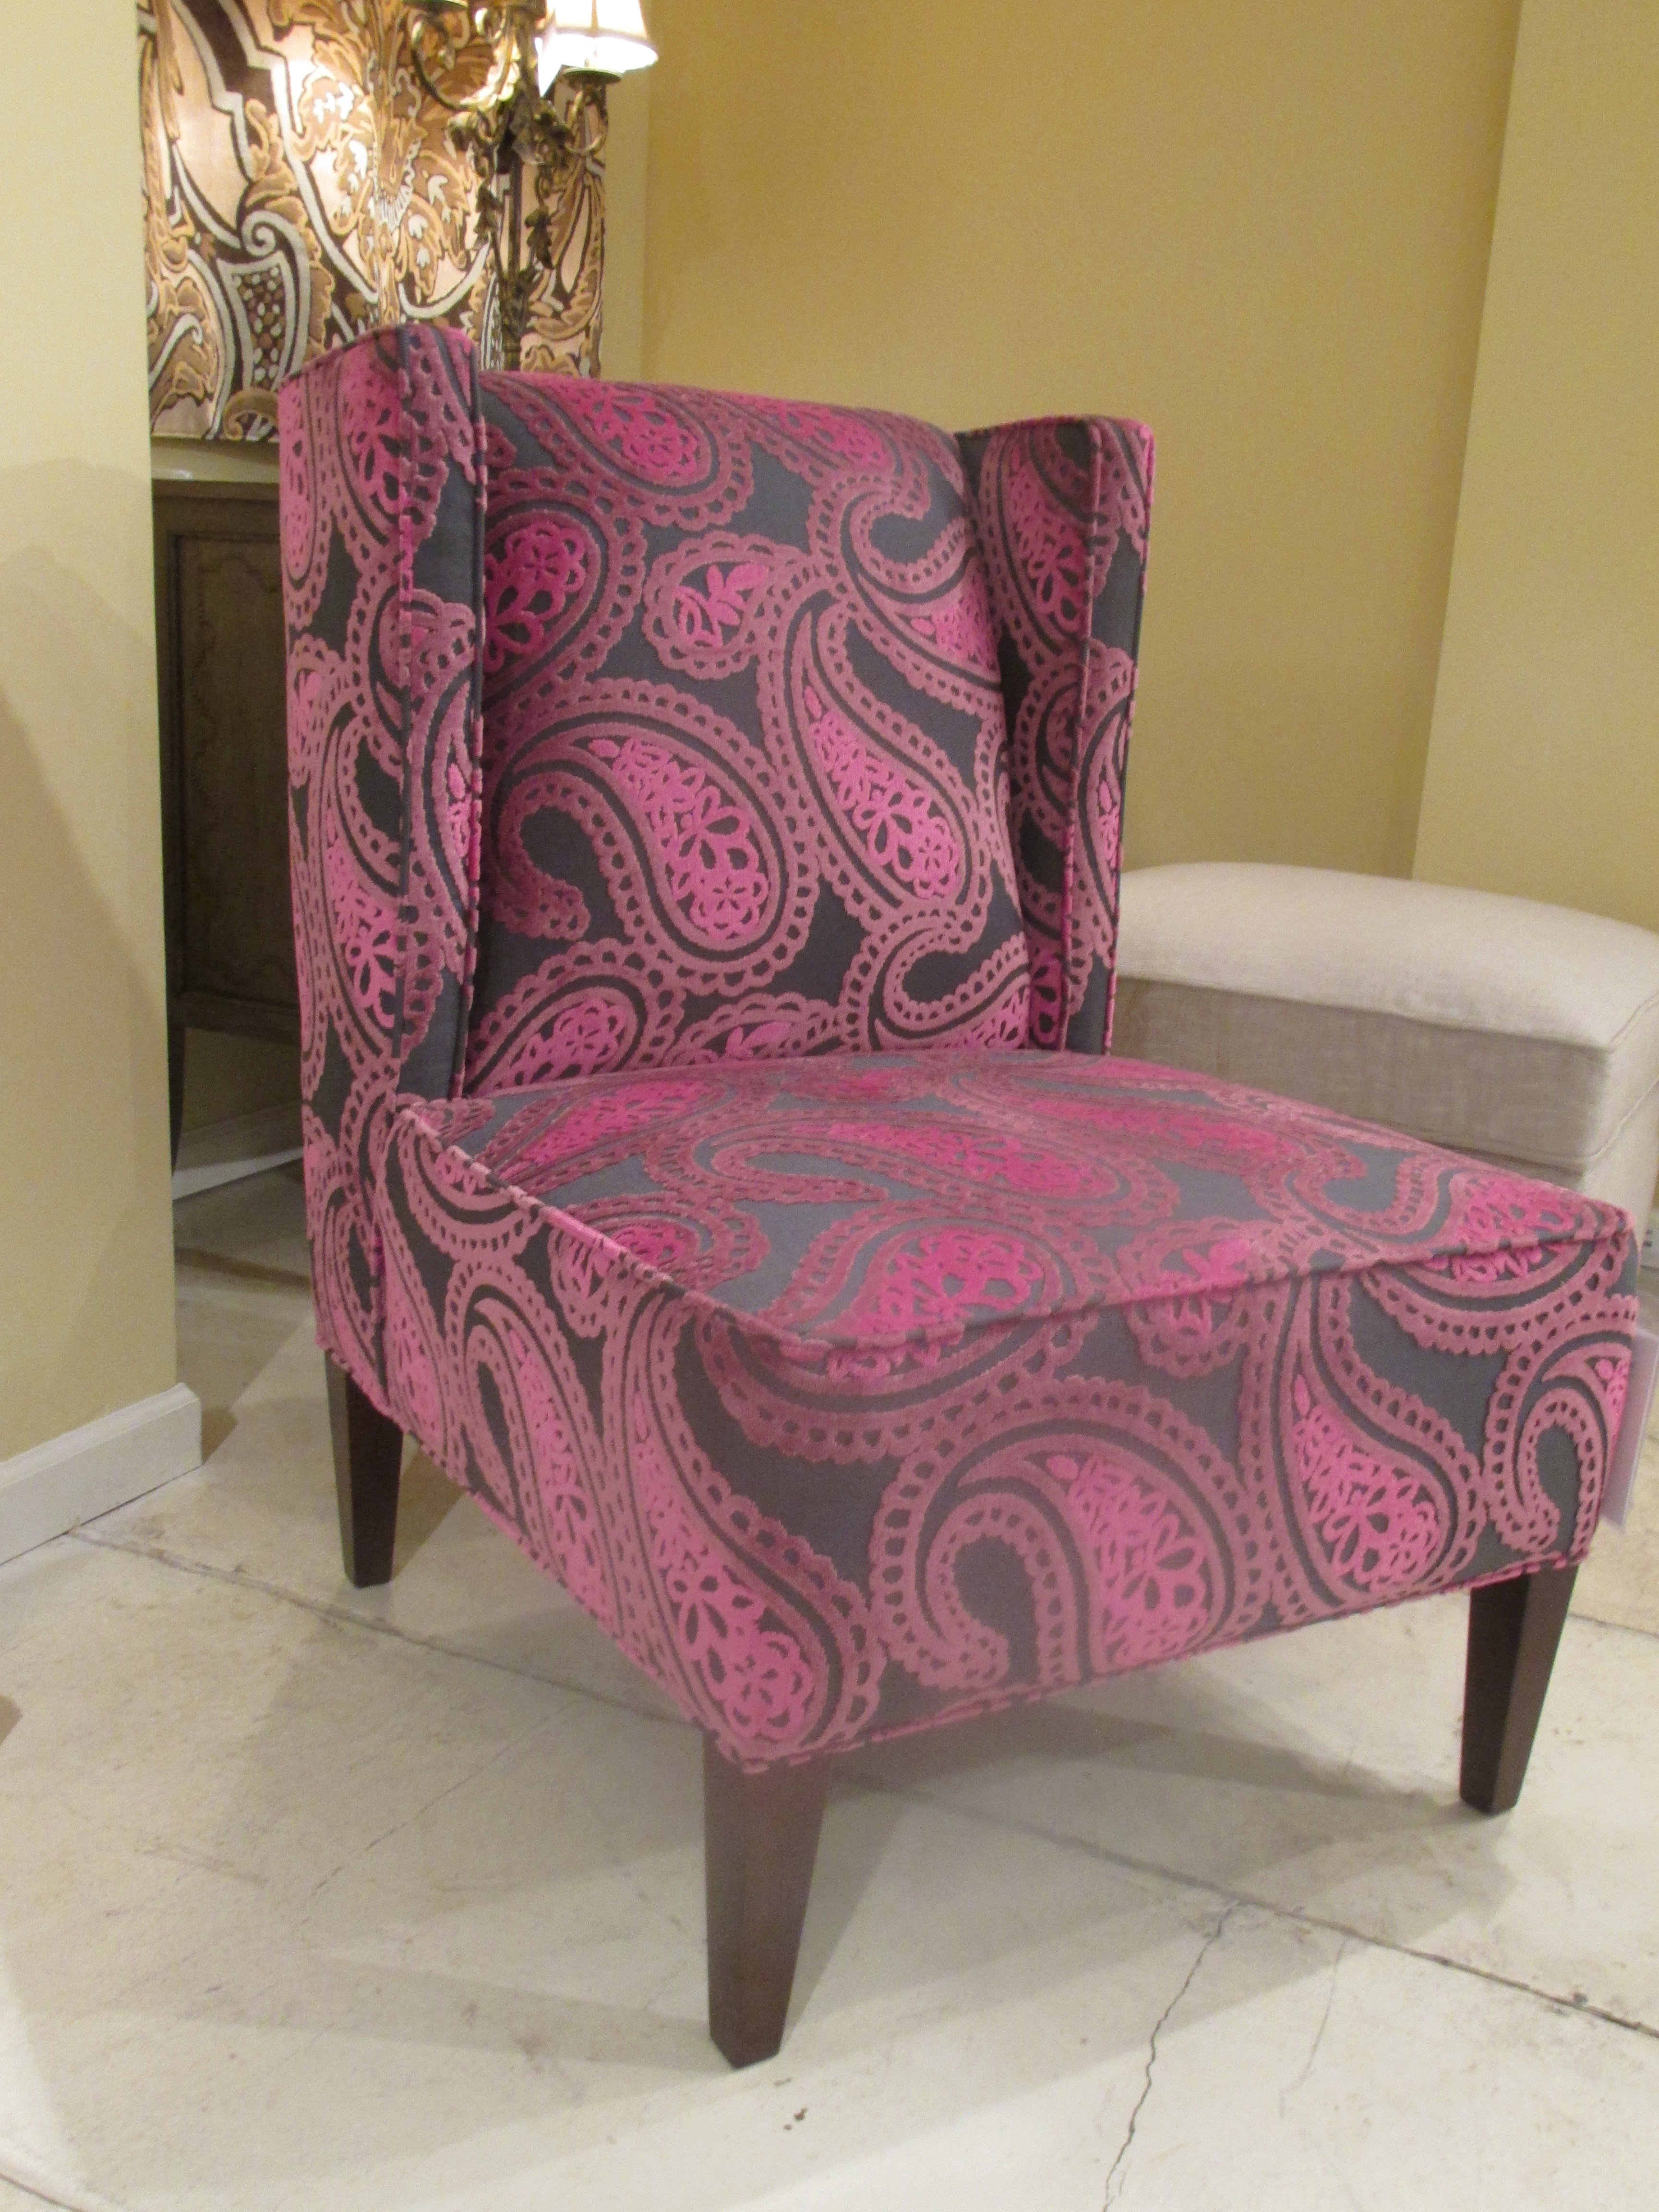 HGTV Home Furniture's fun and lively accent chair adds a pop of color to any neutral setting. Available at Good's Home Furnishings.